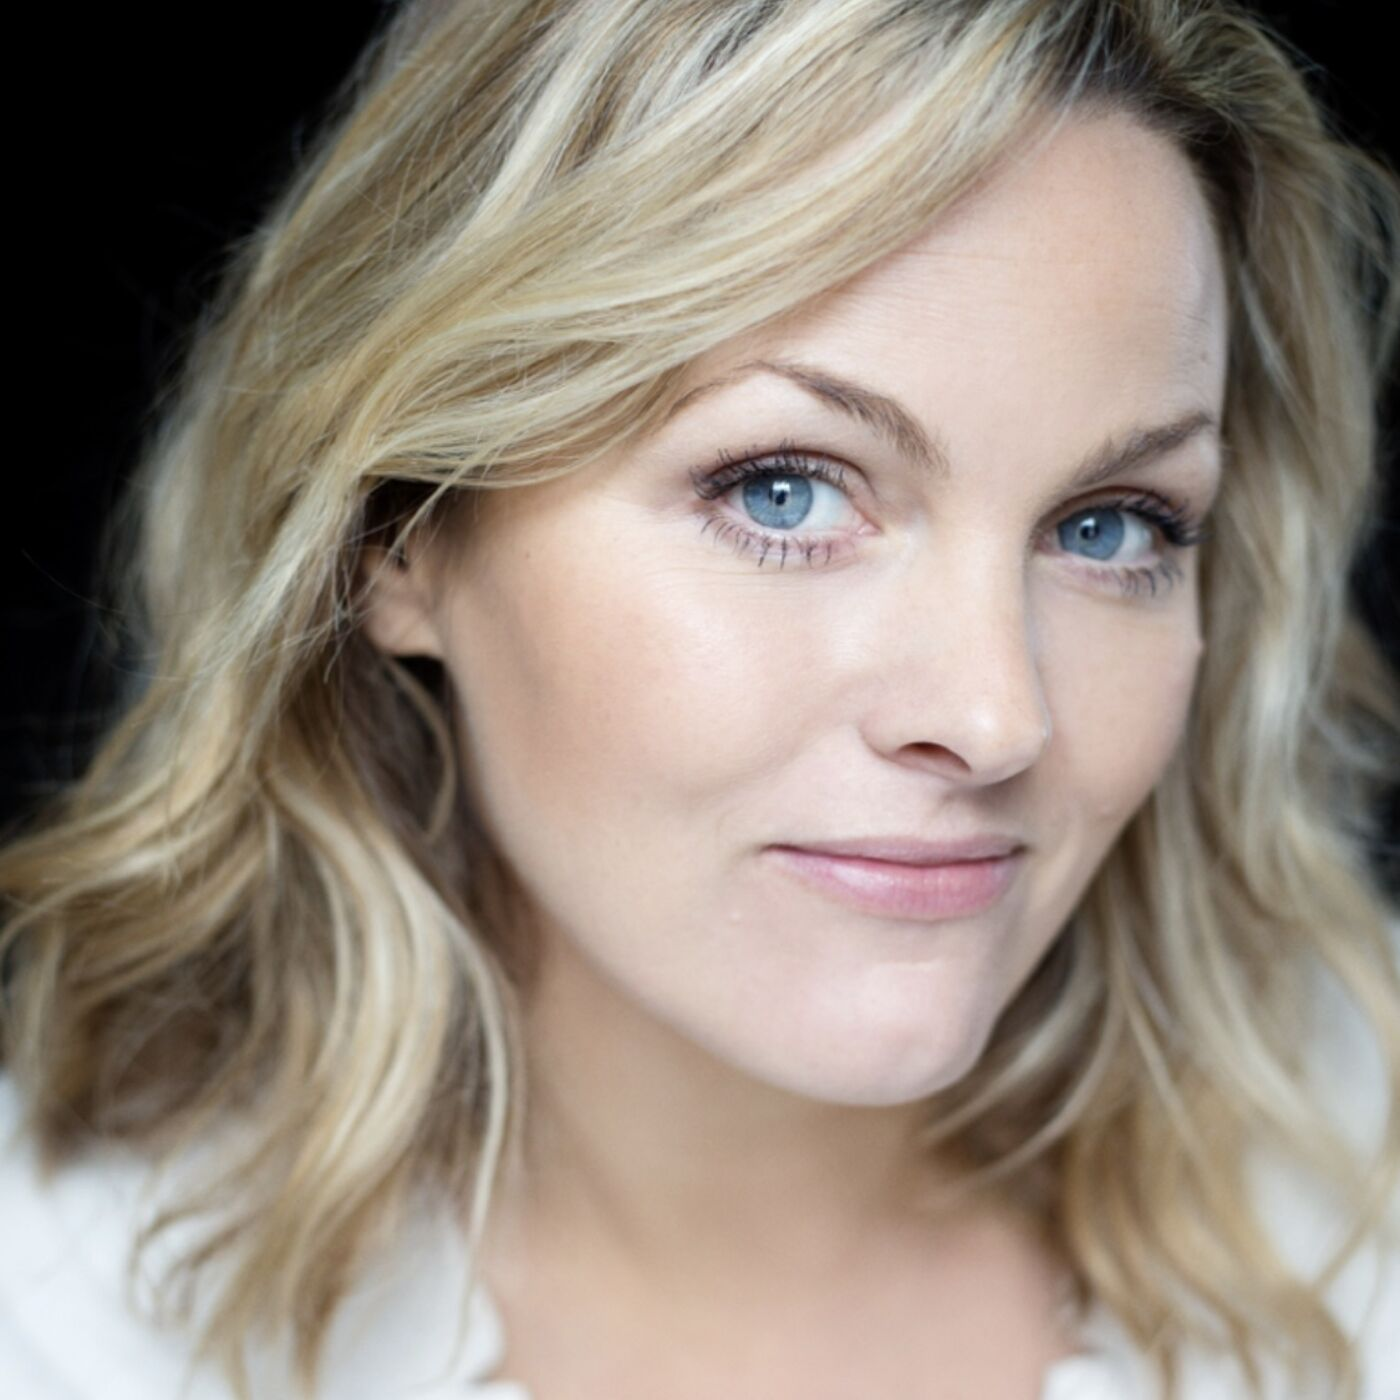 EastEnders at 35: Tanya's Back! Jo Joyner on her turbulent time in Albert Square